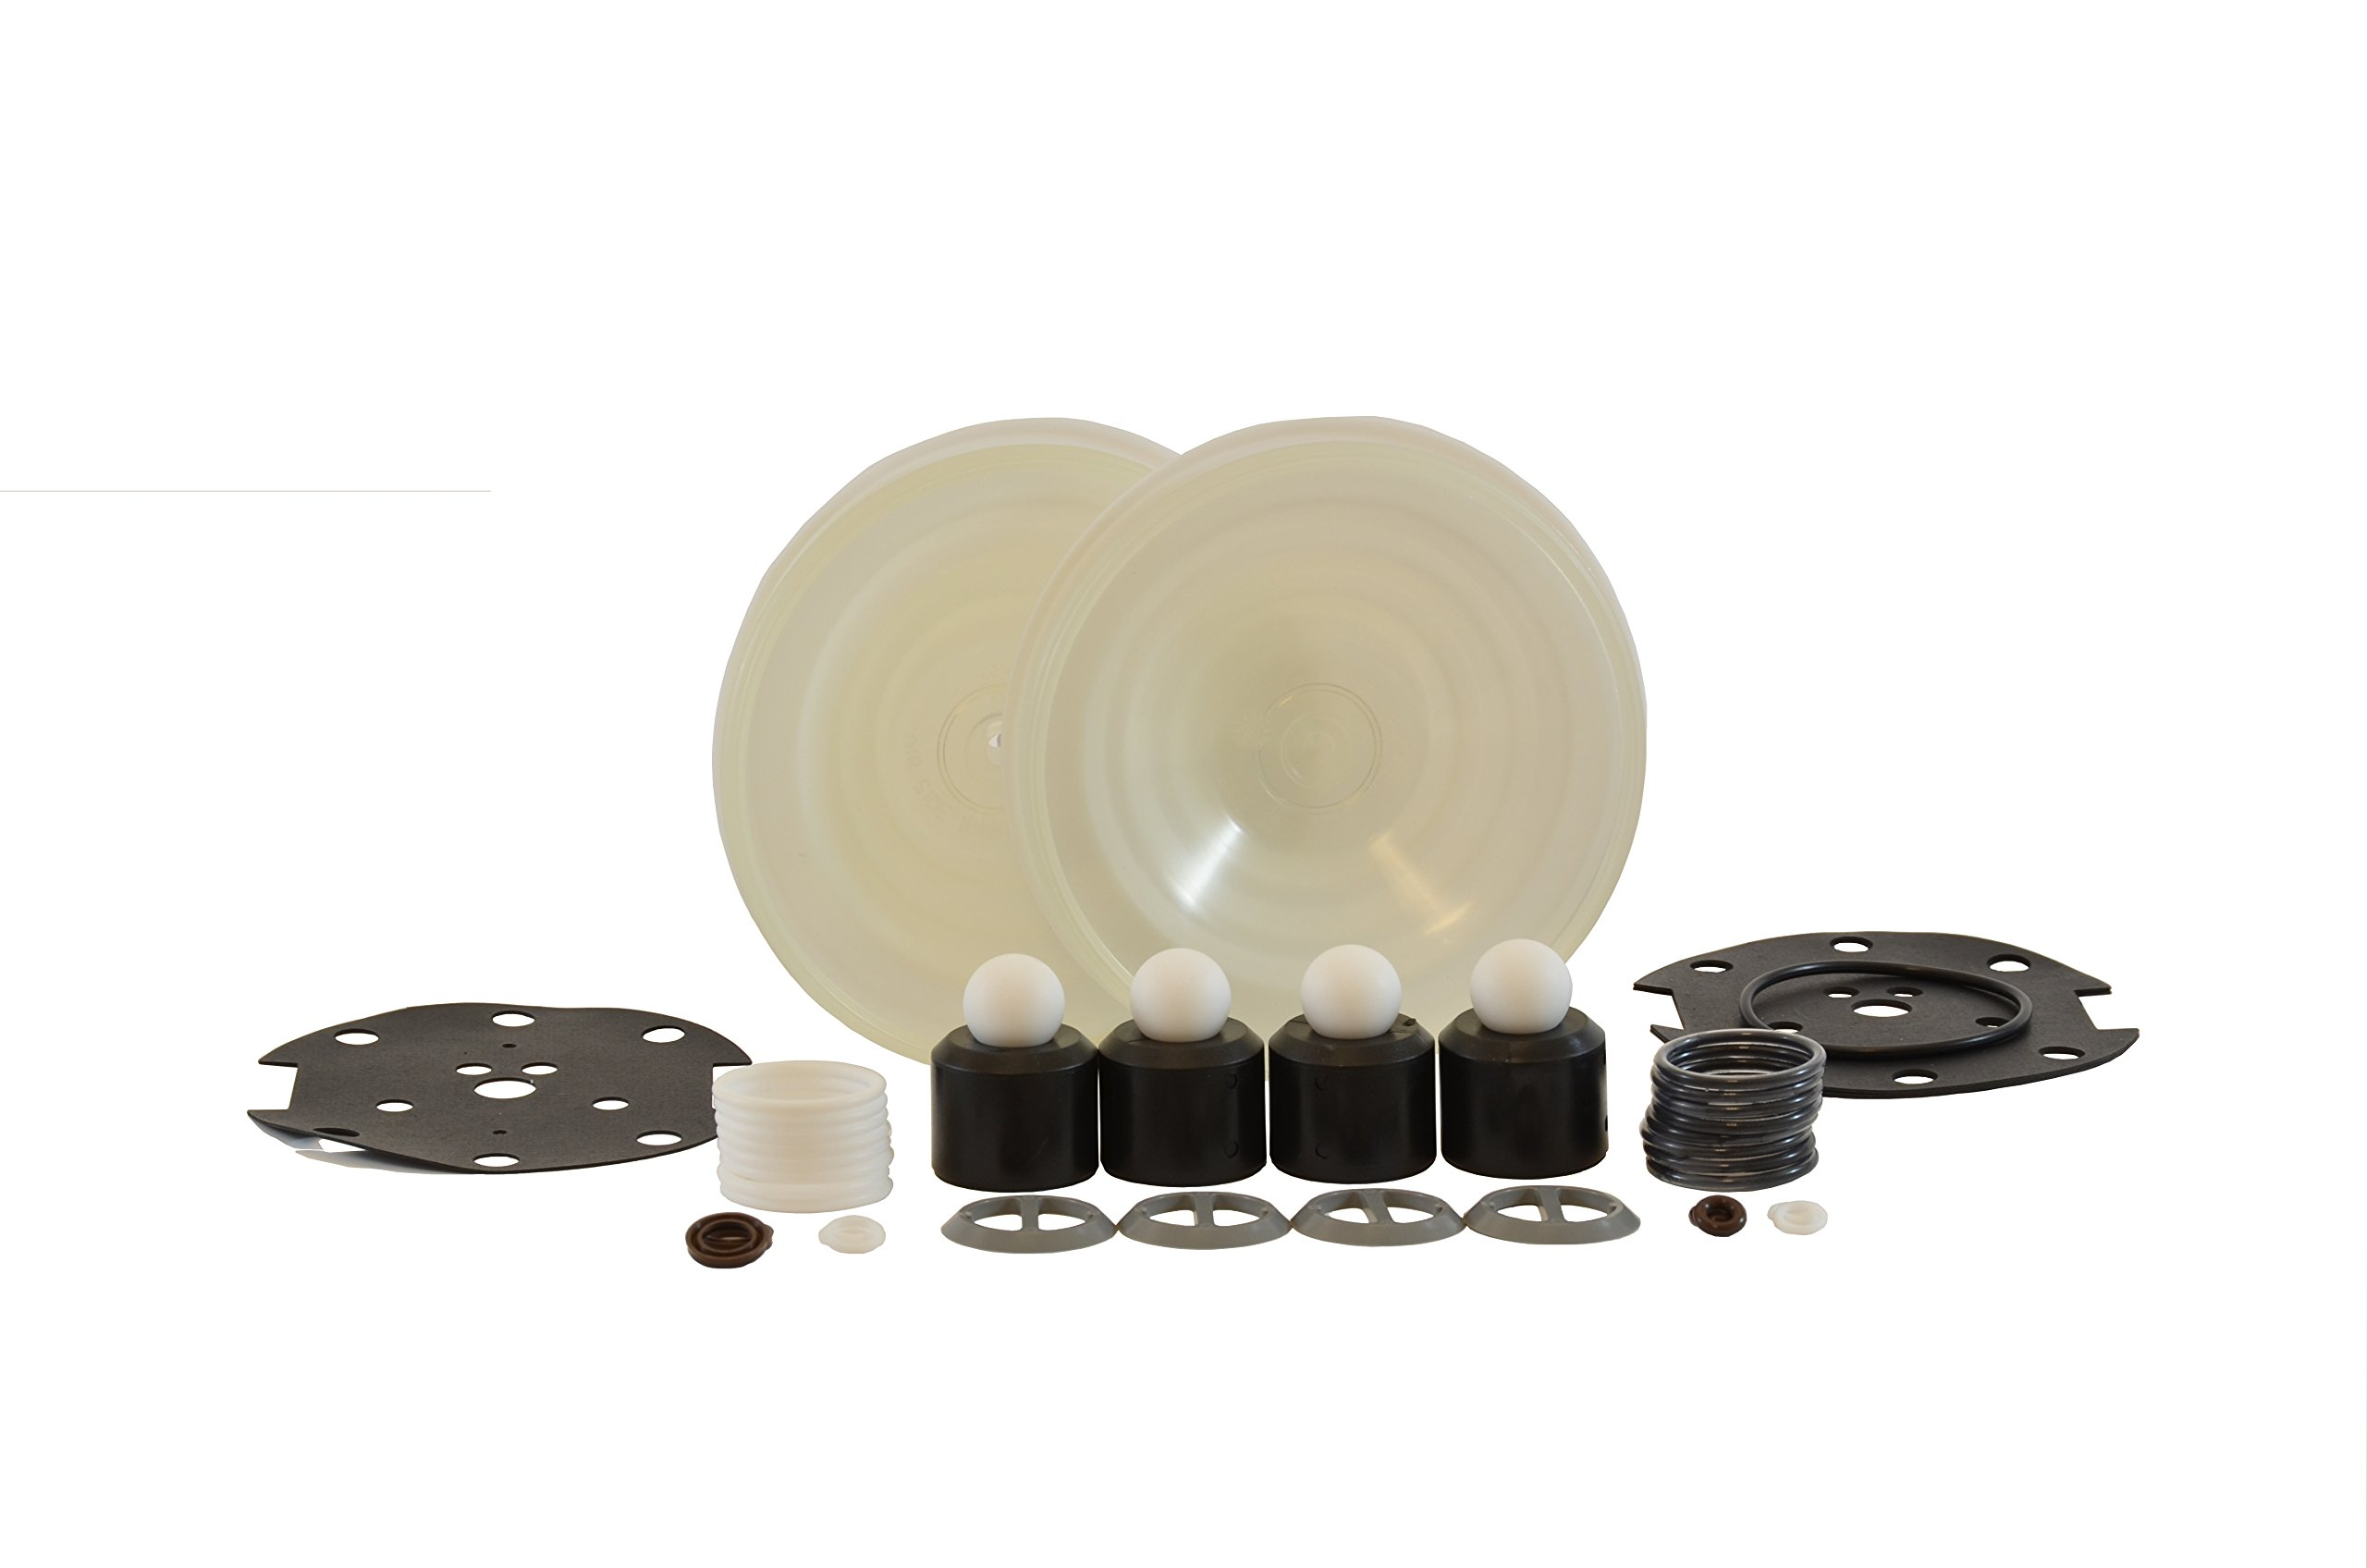 Graco Husky D05911 515 Complete Fluid Repair Kit: Polypropylene Seats, PTFE Balls, PTFE Diaphragms